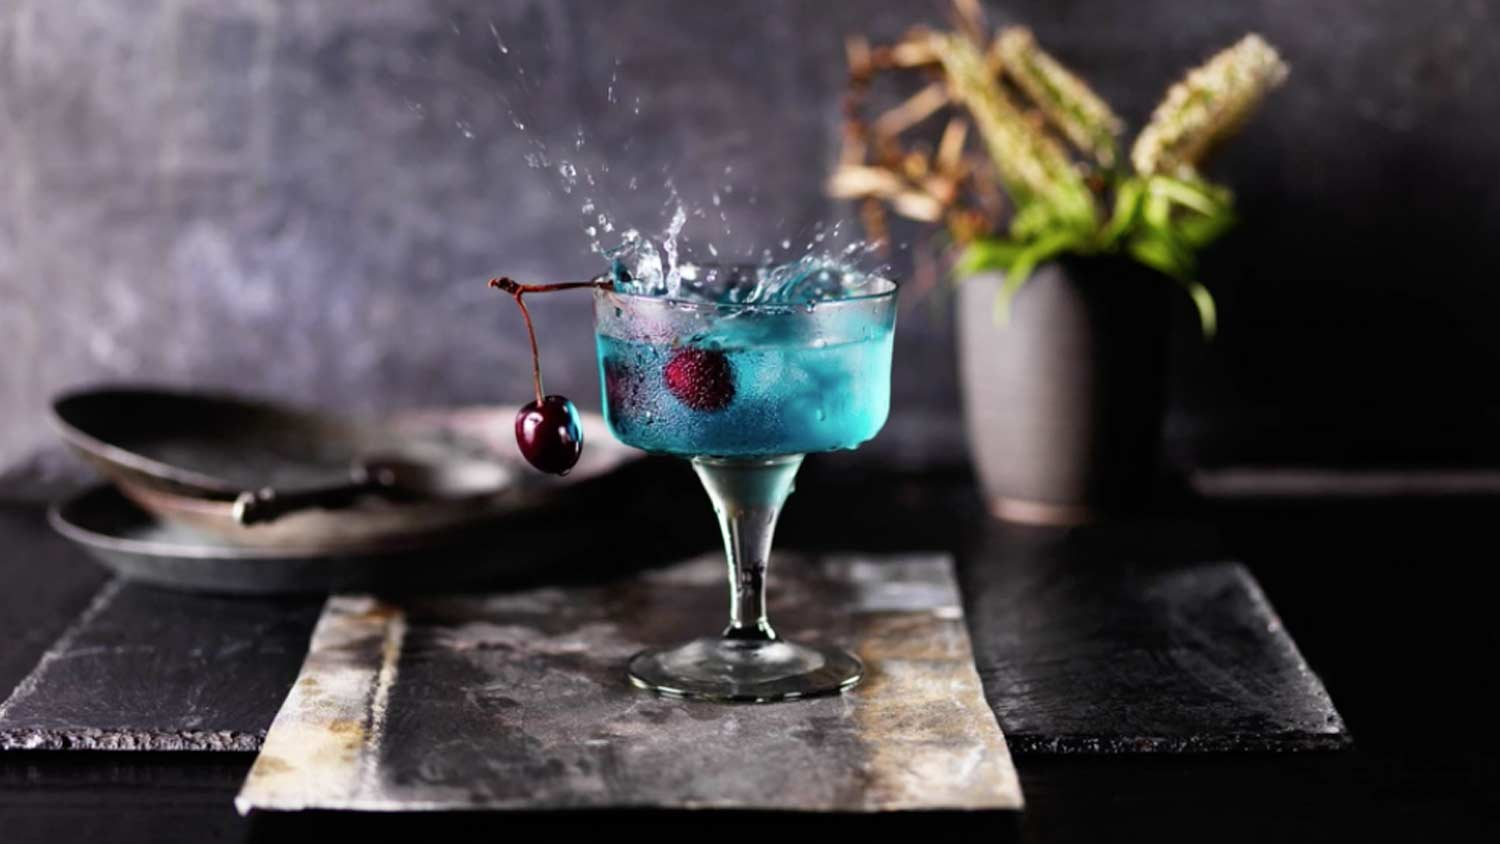 Snapper-Films---Directors---Karen-Thomas---Still-Photography---Blue-Cocktail---Landscape